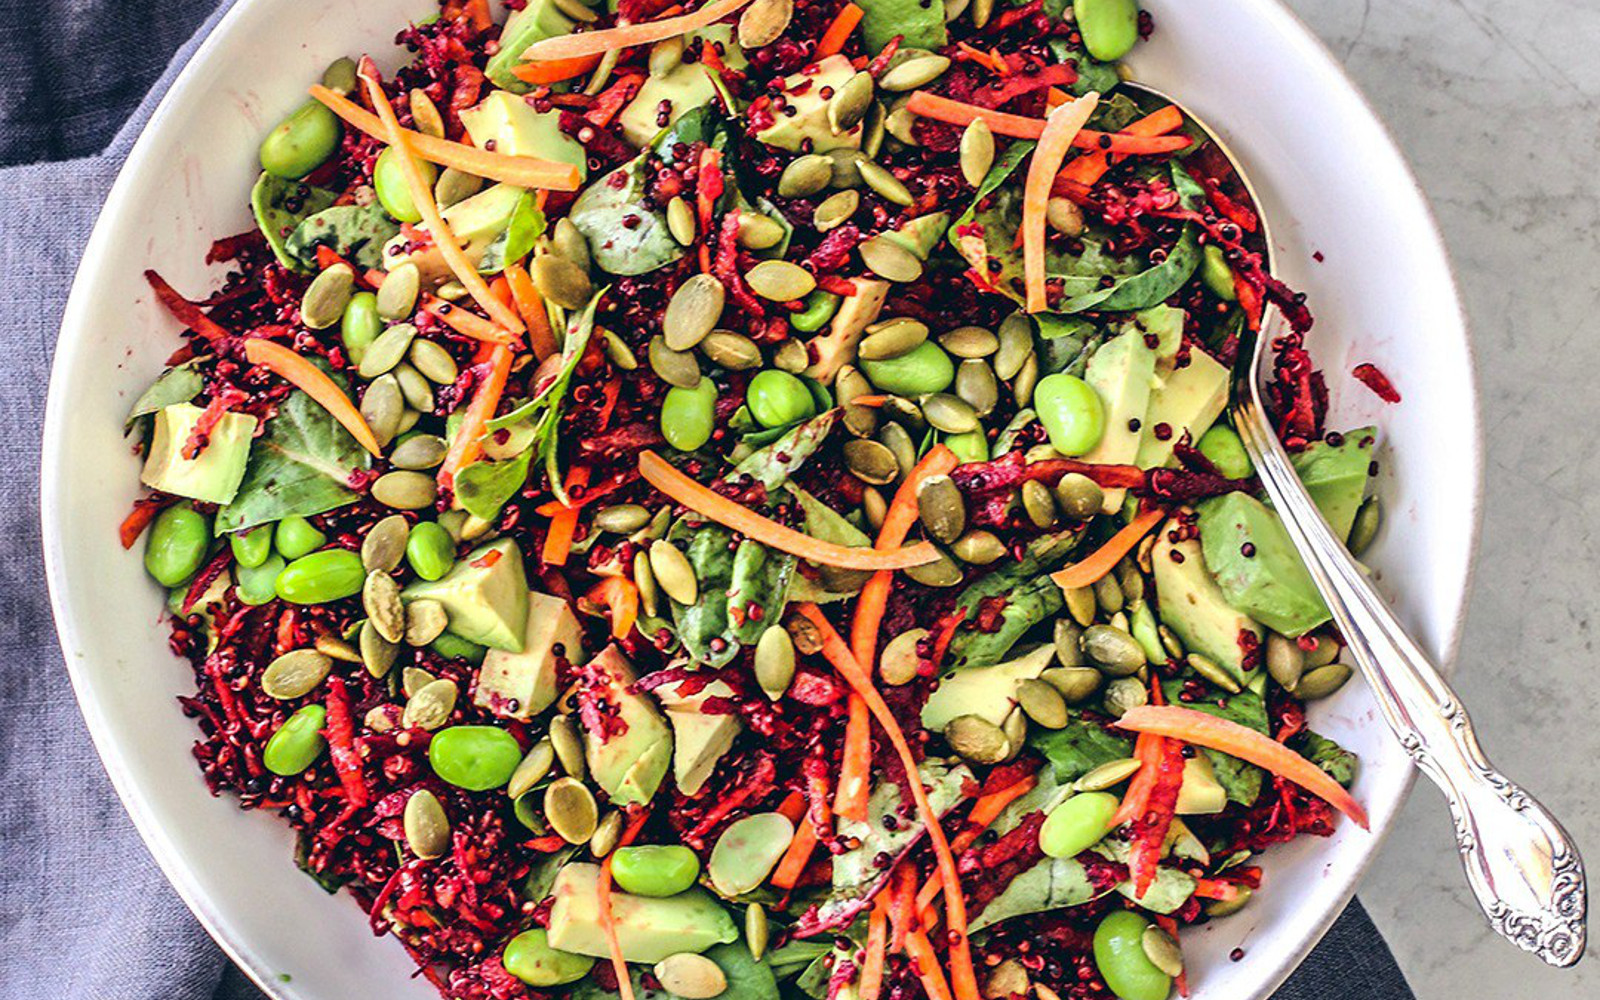 Bright Beet Salad With Quinoa and Toasted Pepitas